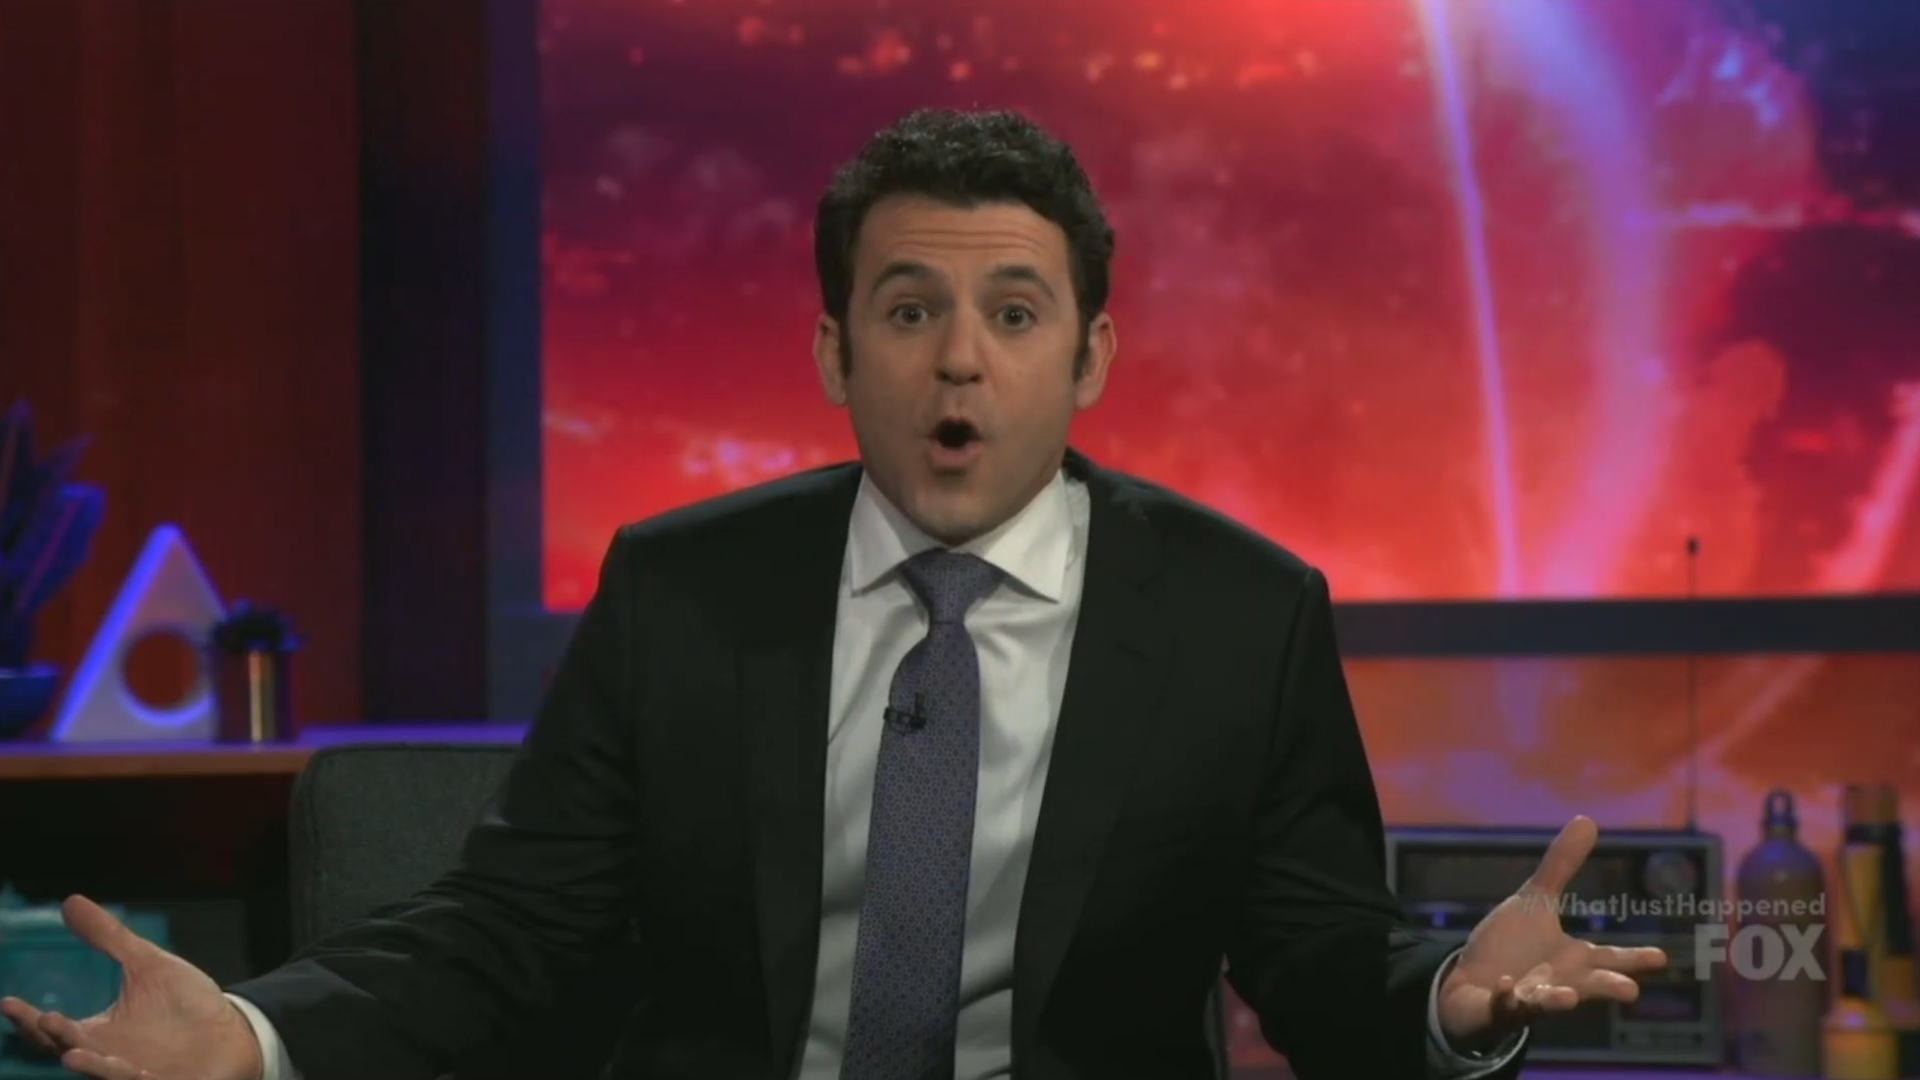 Twitter slams Fred Savage's new show: 'Worst thing I've seen on television'